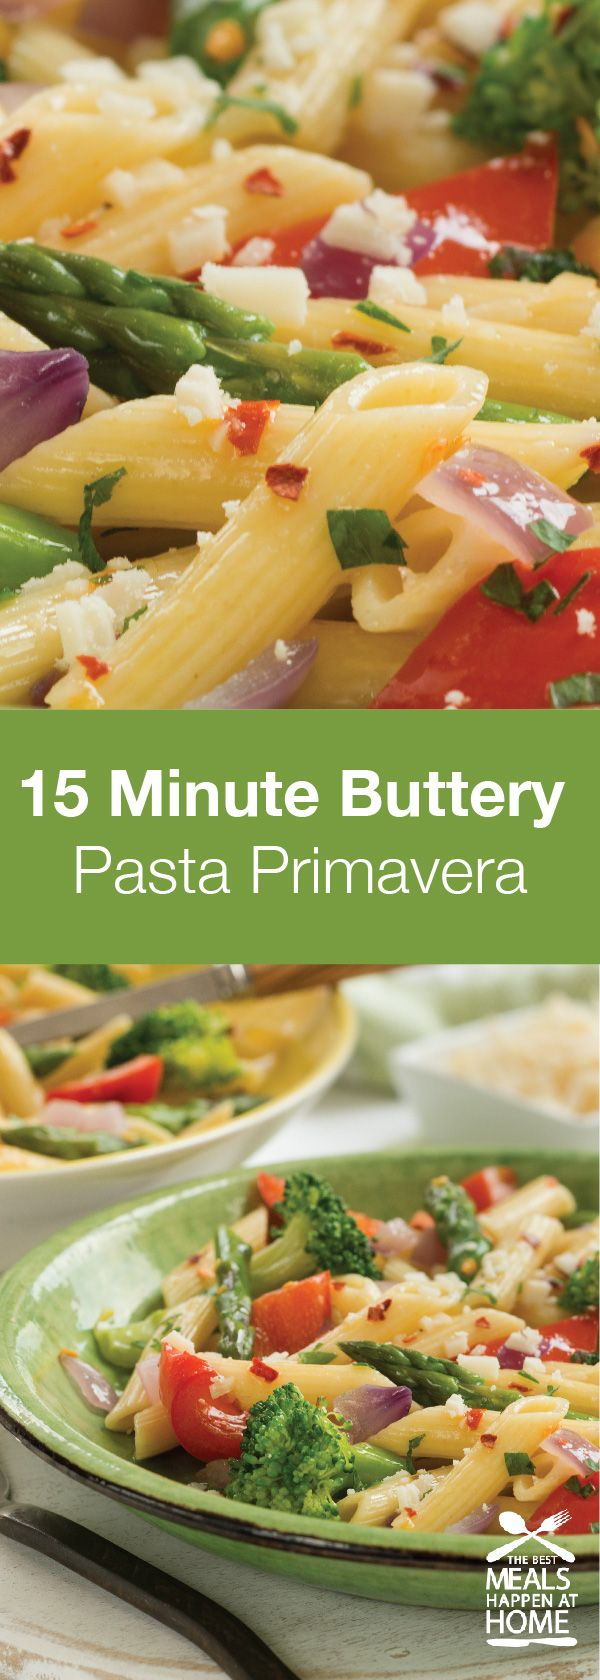 Try this Buttery Pasta Primavera for delicious comfort food at its finest!